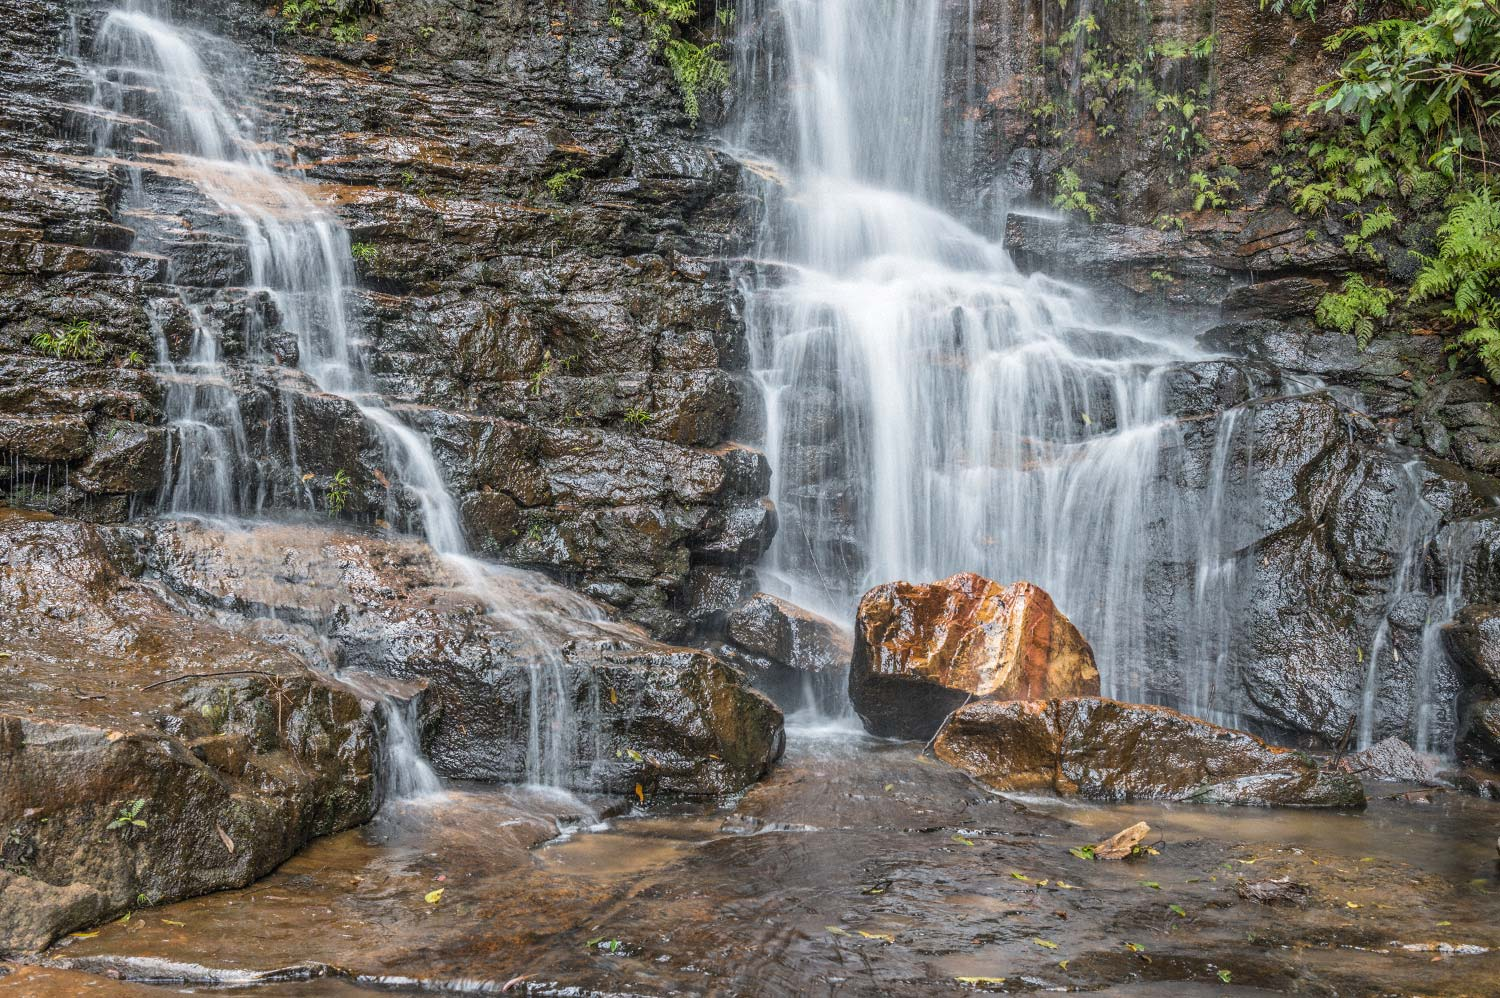 Warren-Hinder-LR-Falls-below-Sylvia-Falls-Wentworth-Falls.jpg